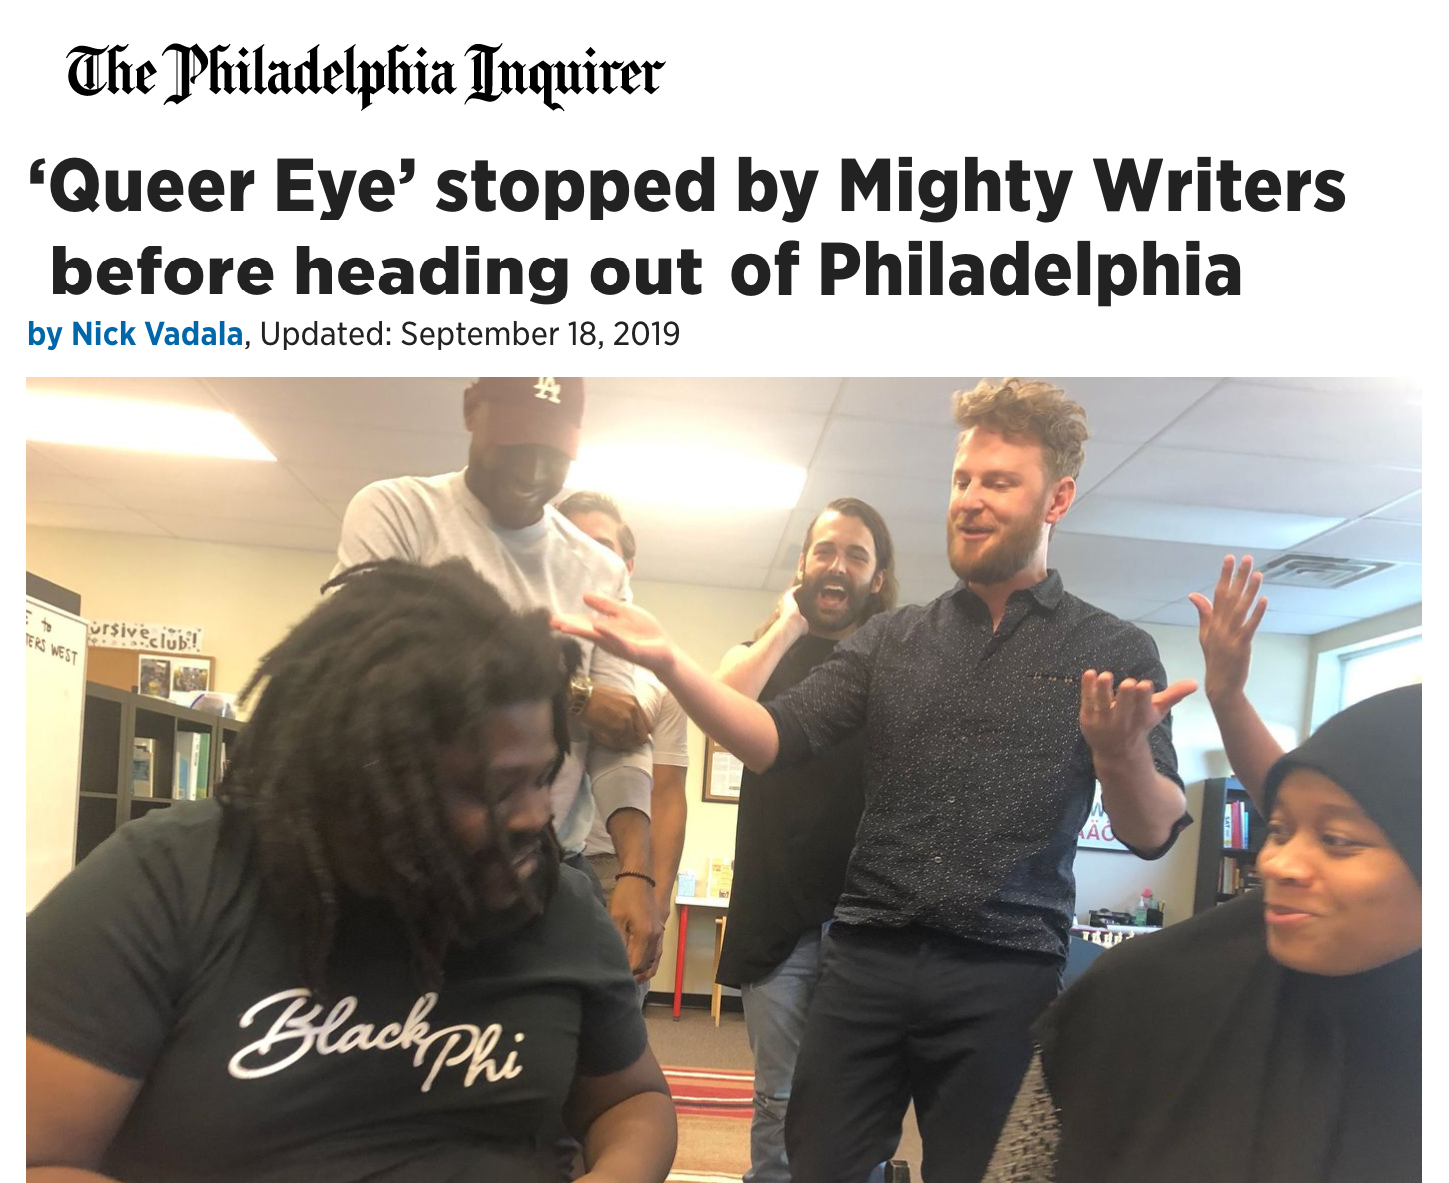 Queer Eye at Mighty Writers!